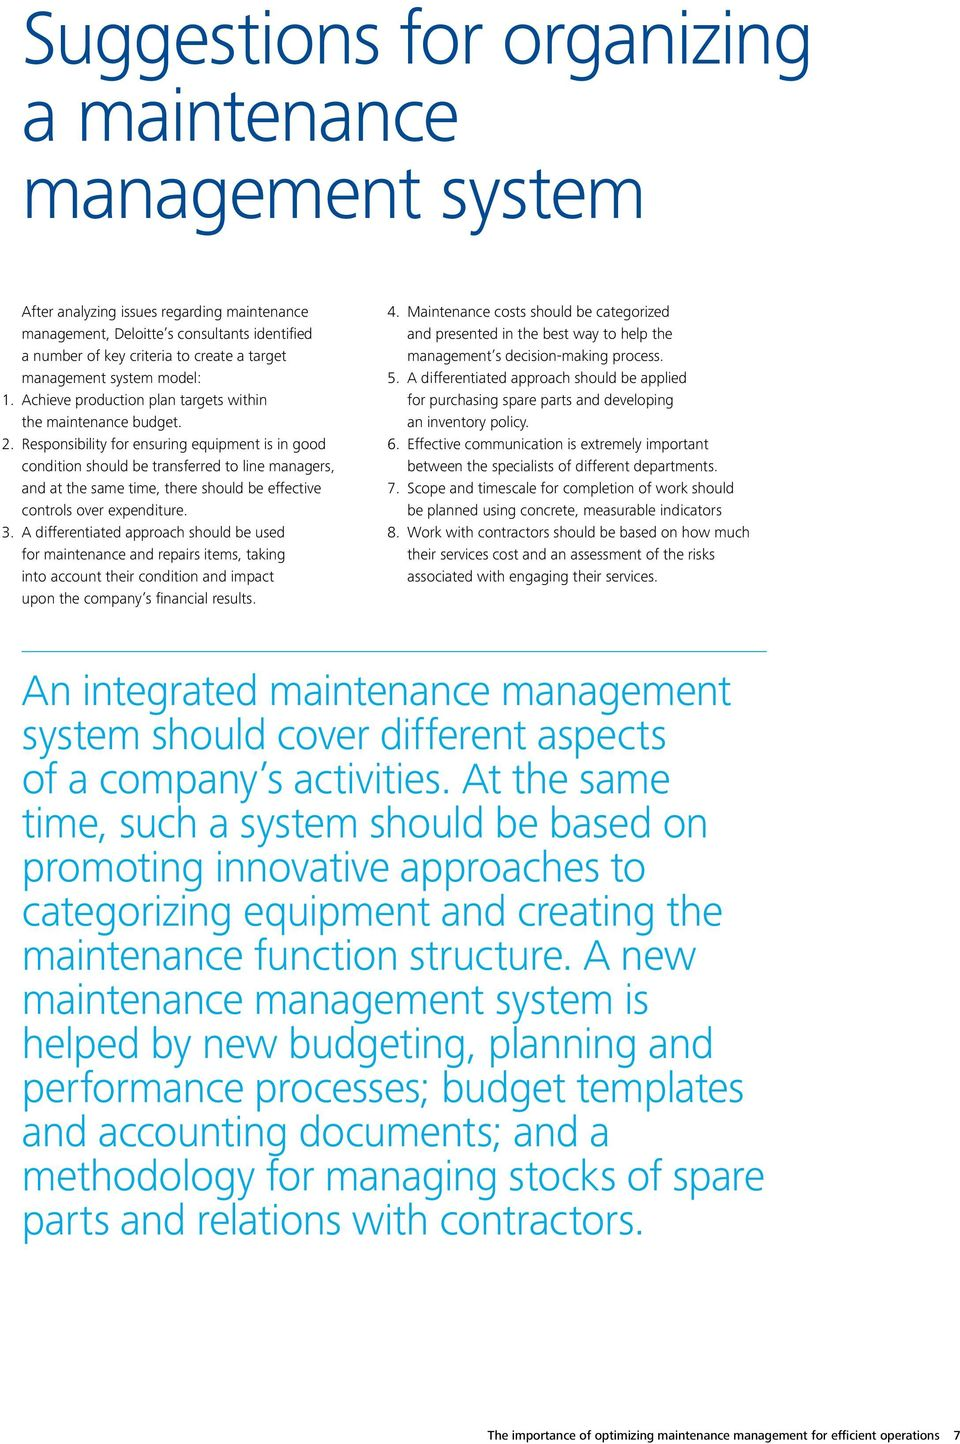 the maintenance budget. Responsibility for ensuring equipment is in good condition should be transferred to line managers, and at the same time, there should be effective controls over expenditure.